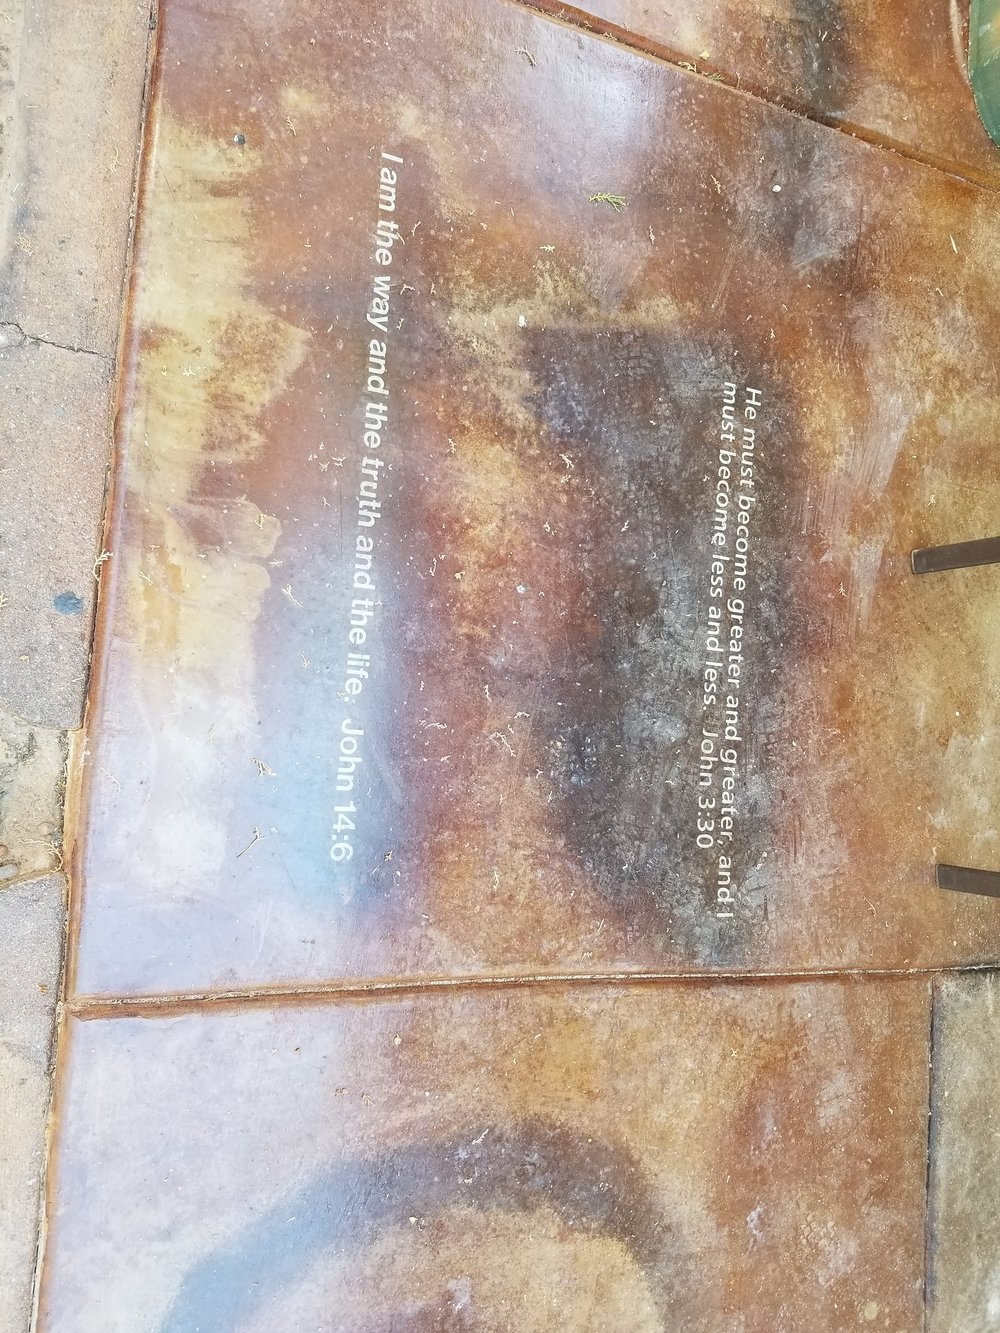 We acid stained scripture into the concrete of the patio and the bedroom floors.